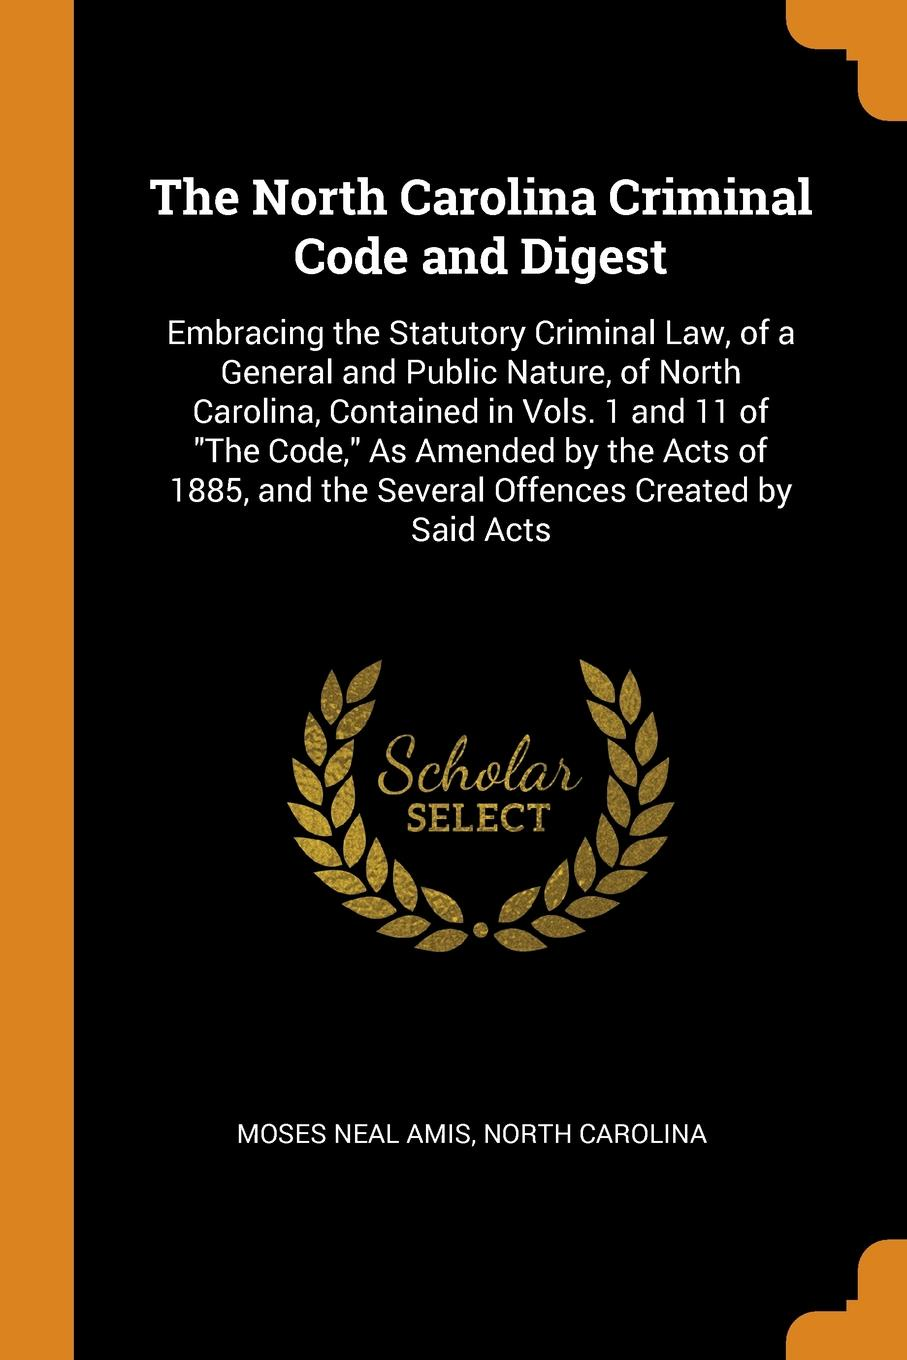 цена на Moses Neal Amis, North Carolina The North Carolina Criminal Code and Digest. Embracing the Statutory Criminal Law, of a General and Public Nature, of North Carolina, Contained in Vols. 1 and 11 of The Code, As Amended by the Acts of 1885, and the Several Offences Created by Sa...